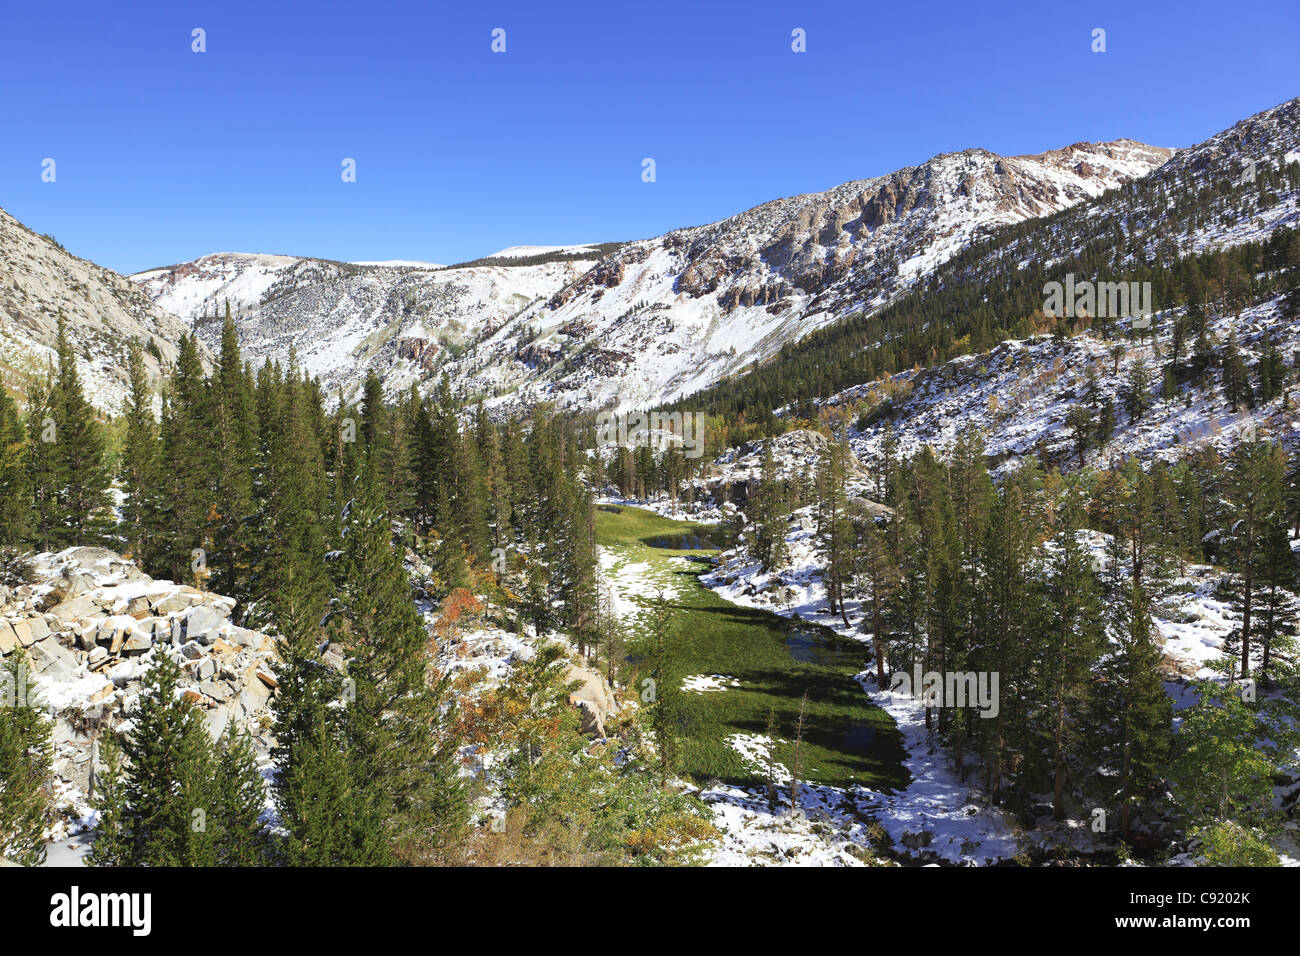 Early autumn snow in an alpine valley in Sierra Nevada mountains, California - Stock Image